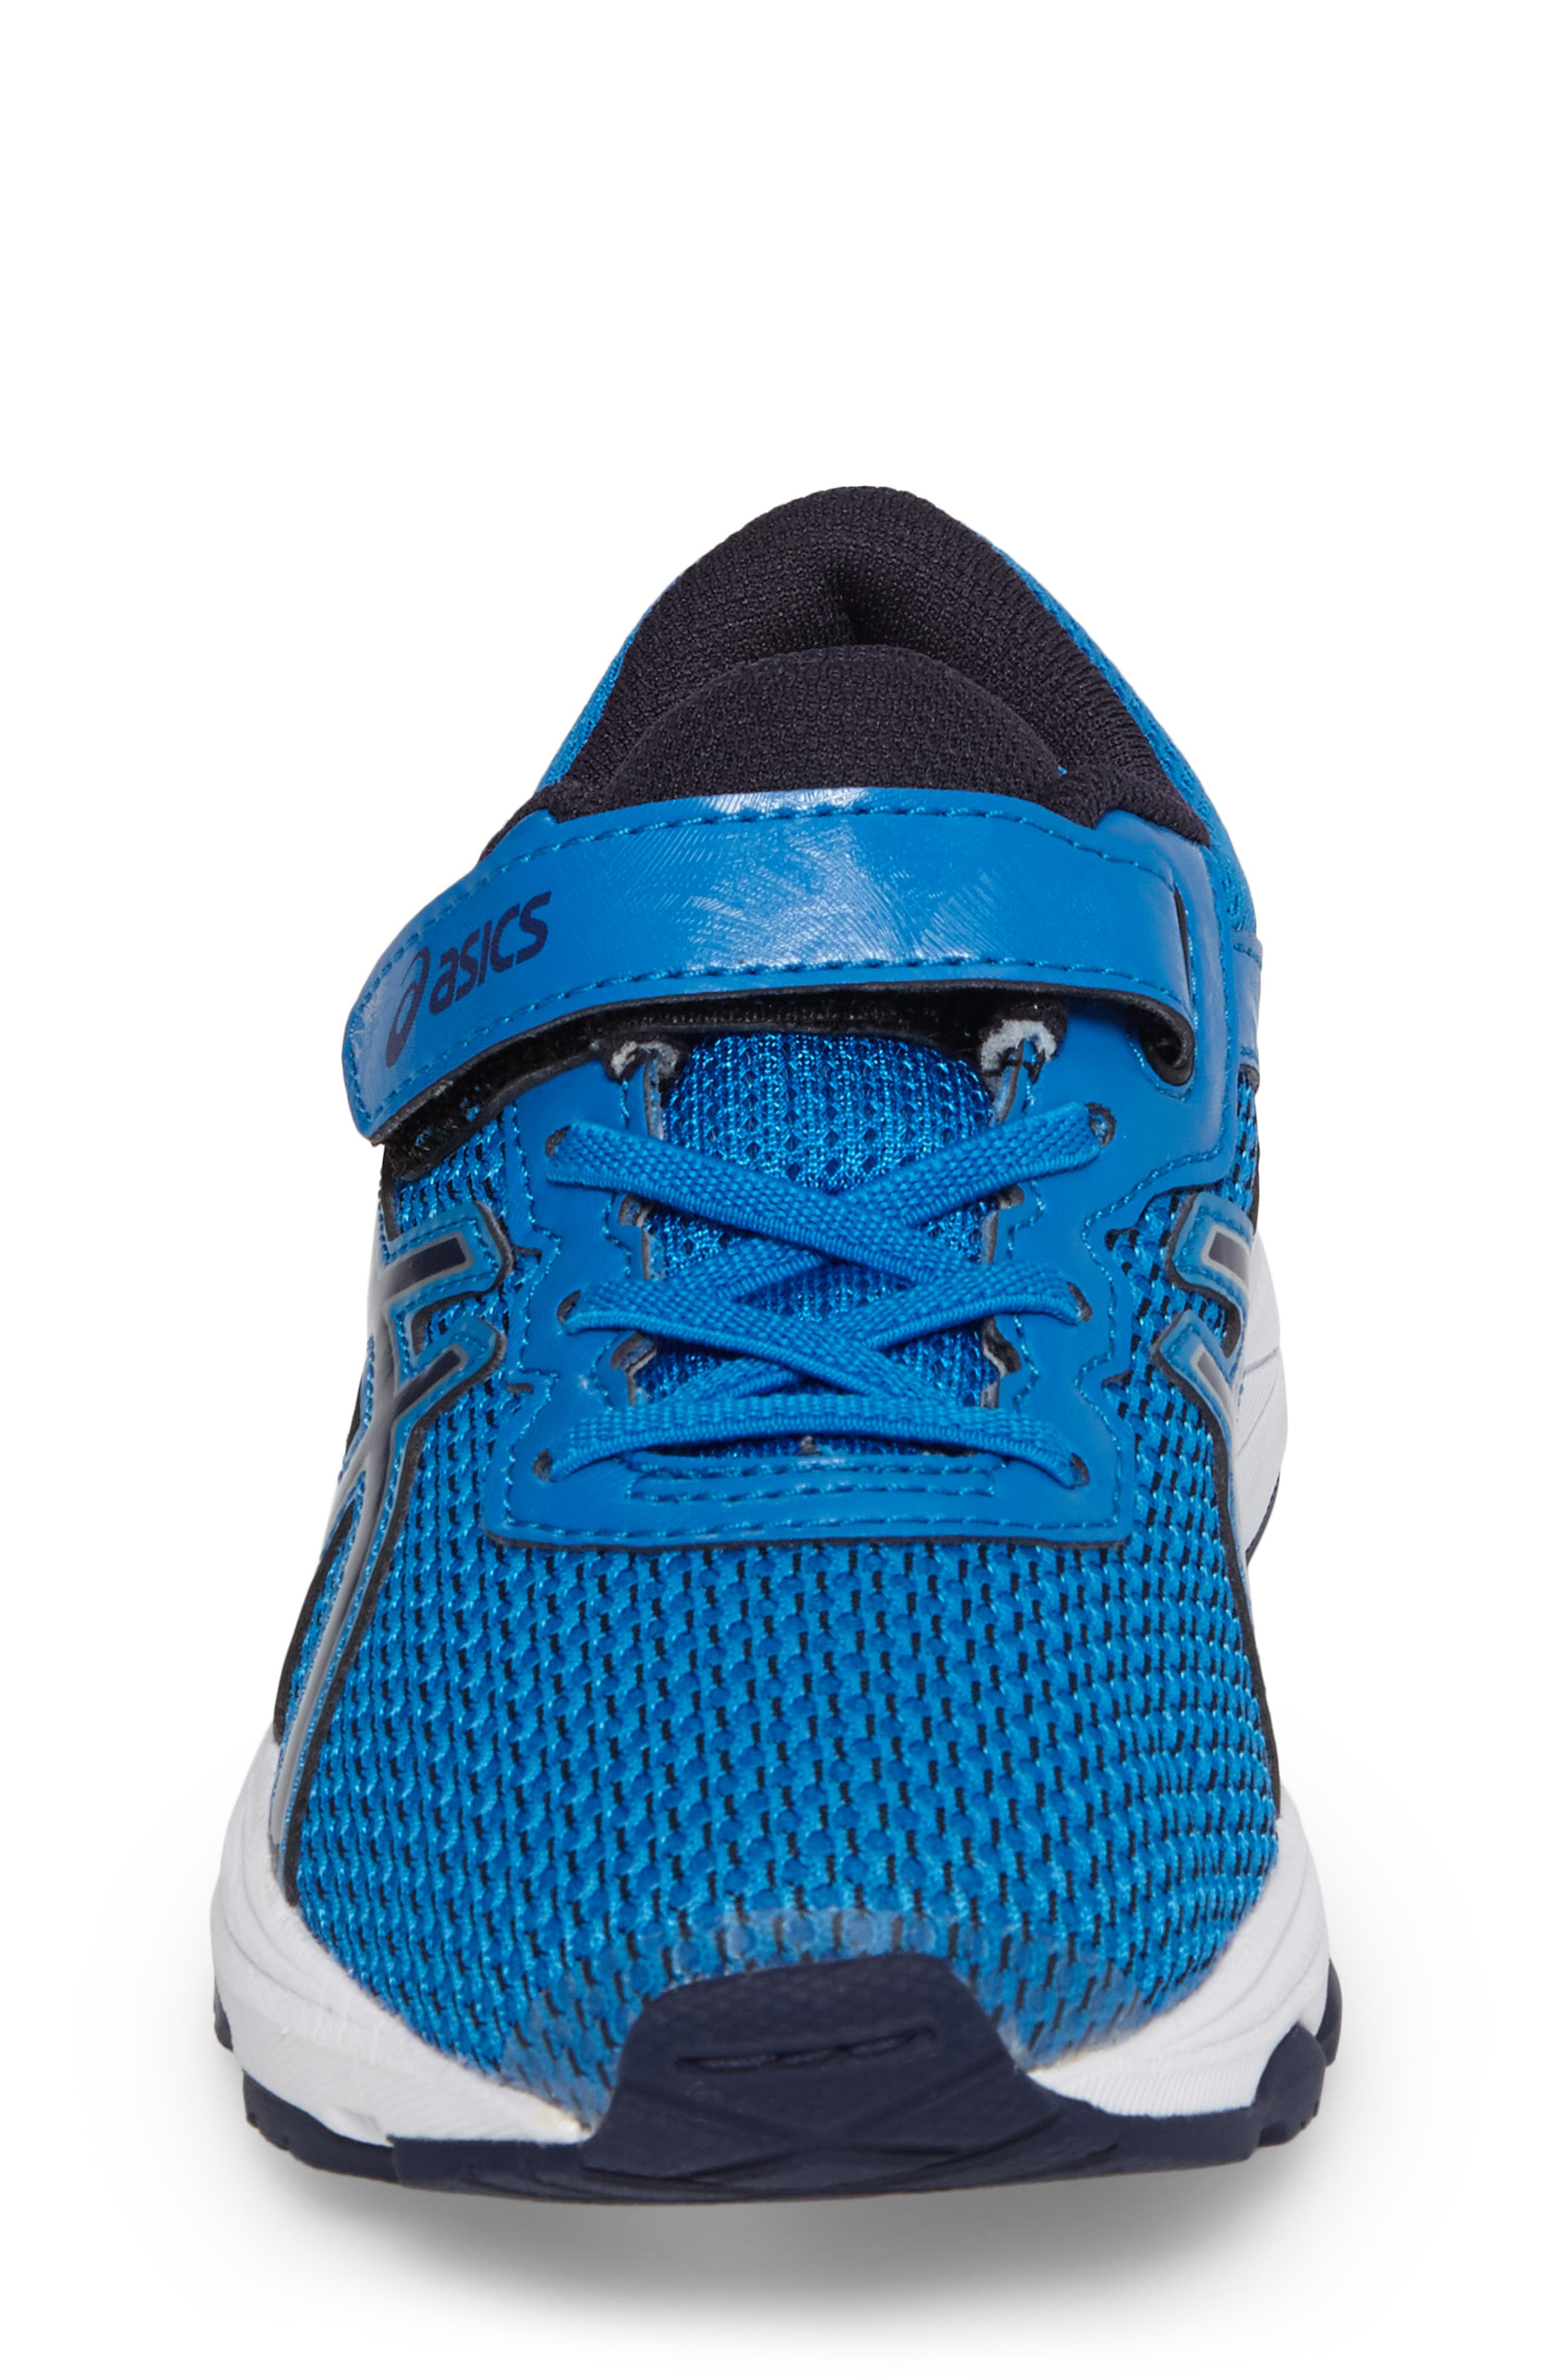 Asics GT-1000<sup>™</sup> 6 PS Sneaker,                             Alternate thumbnail 4, color,                             Blue/ Peacock